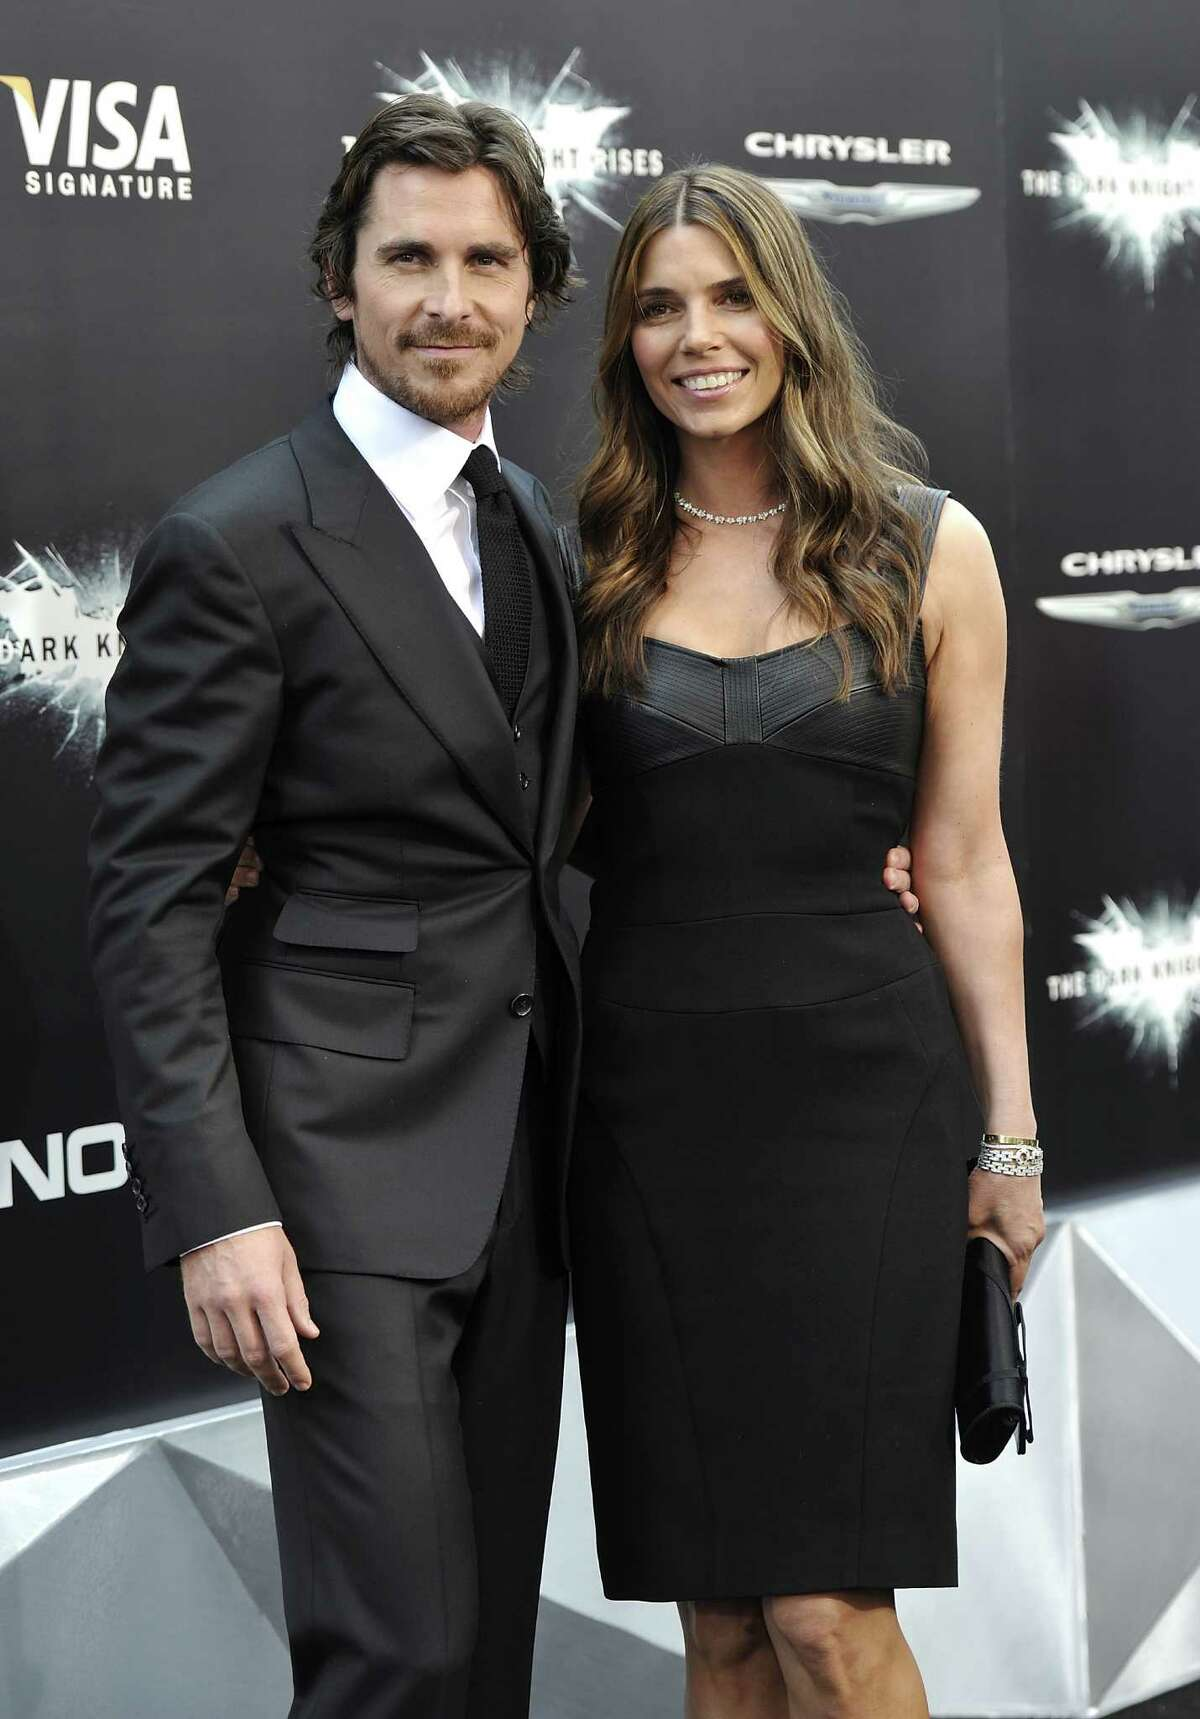 Actor Christian Bale and wife Sibi Blazic attend the world premiere of